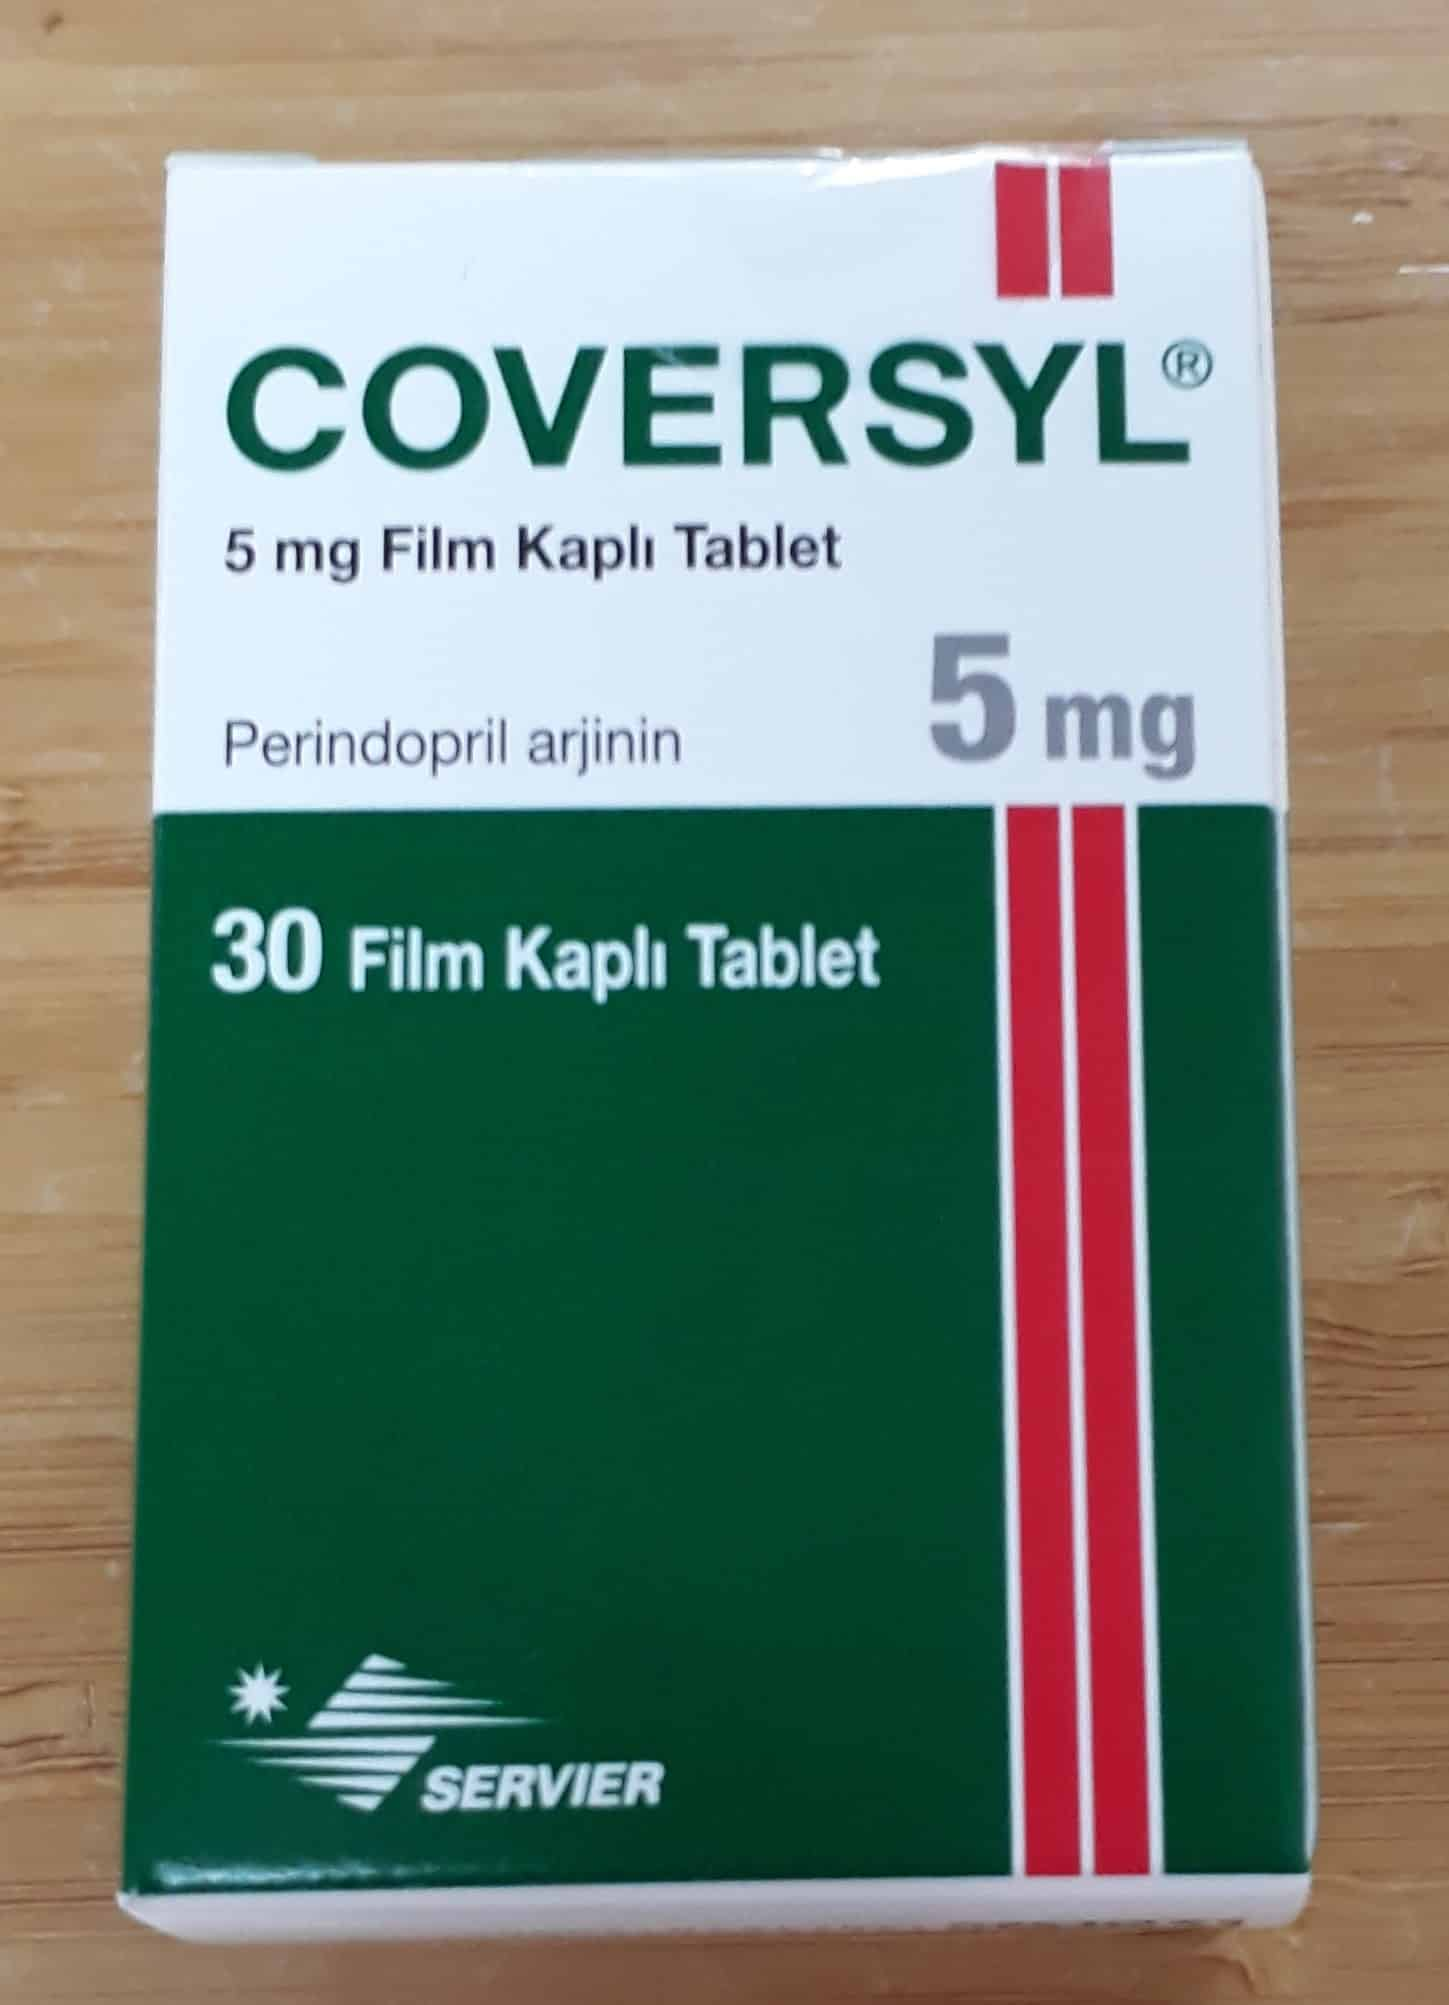 Coversyl tablets reviews : Uses, Dosage, Side Effects, Precautions &Warnings